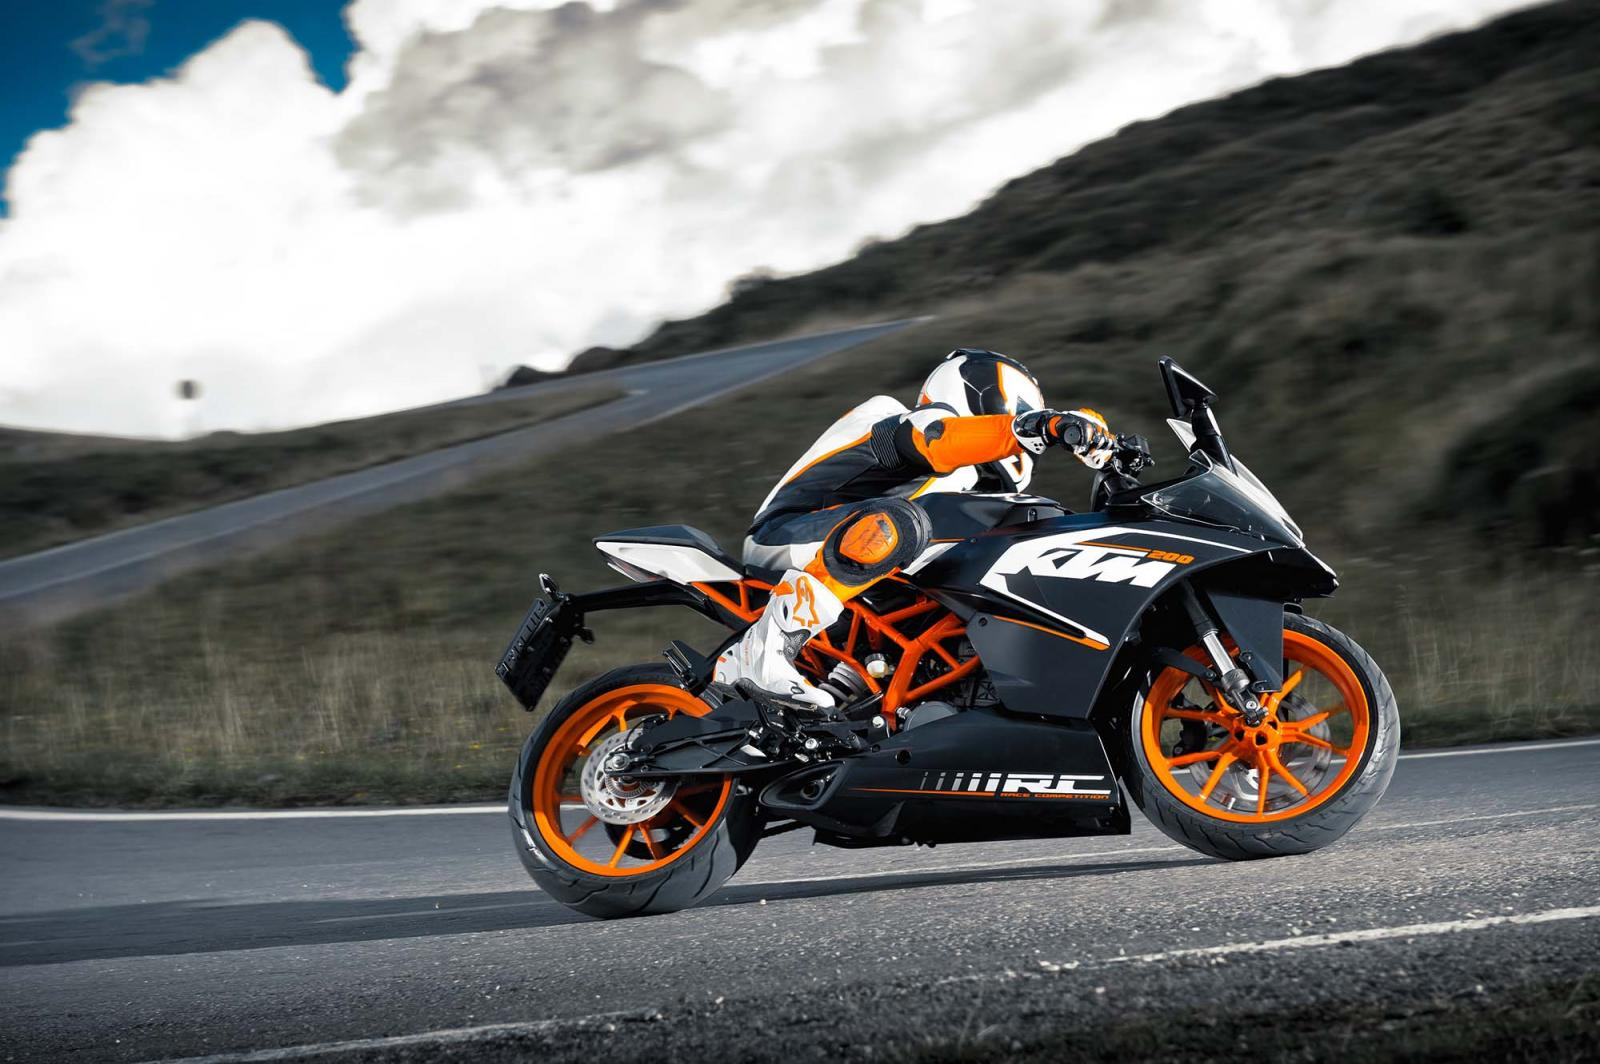 Ktm Rc 200 New Ktm Rc 200 Modified Bike 1600x1064 Wallpaper Teahub Io